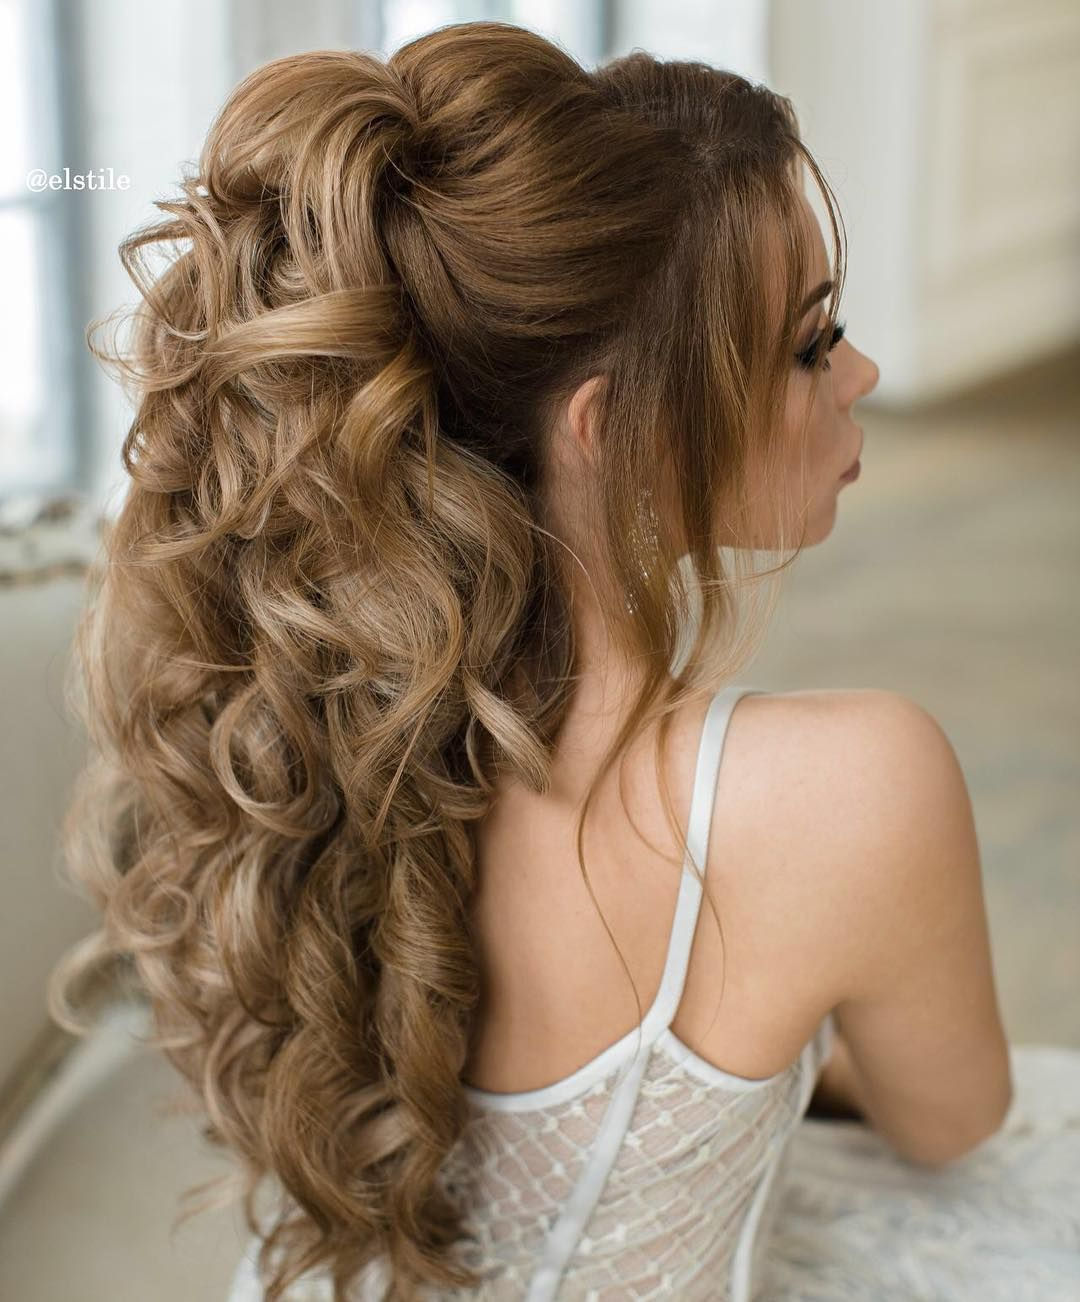 bridal hair half up inspiration | romantic | curly waves elegant